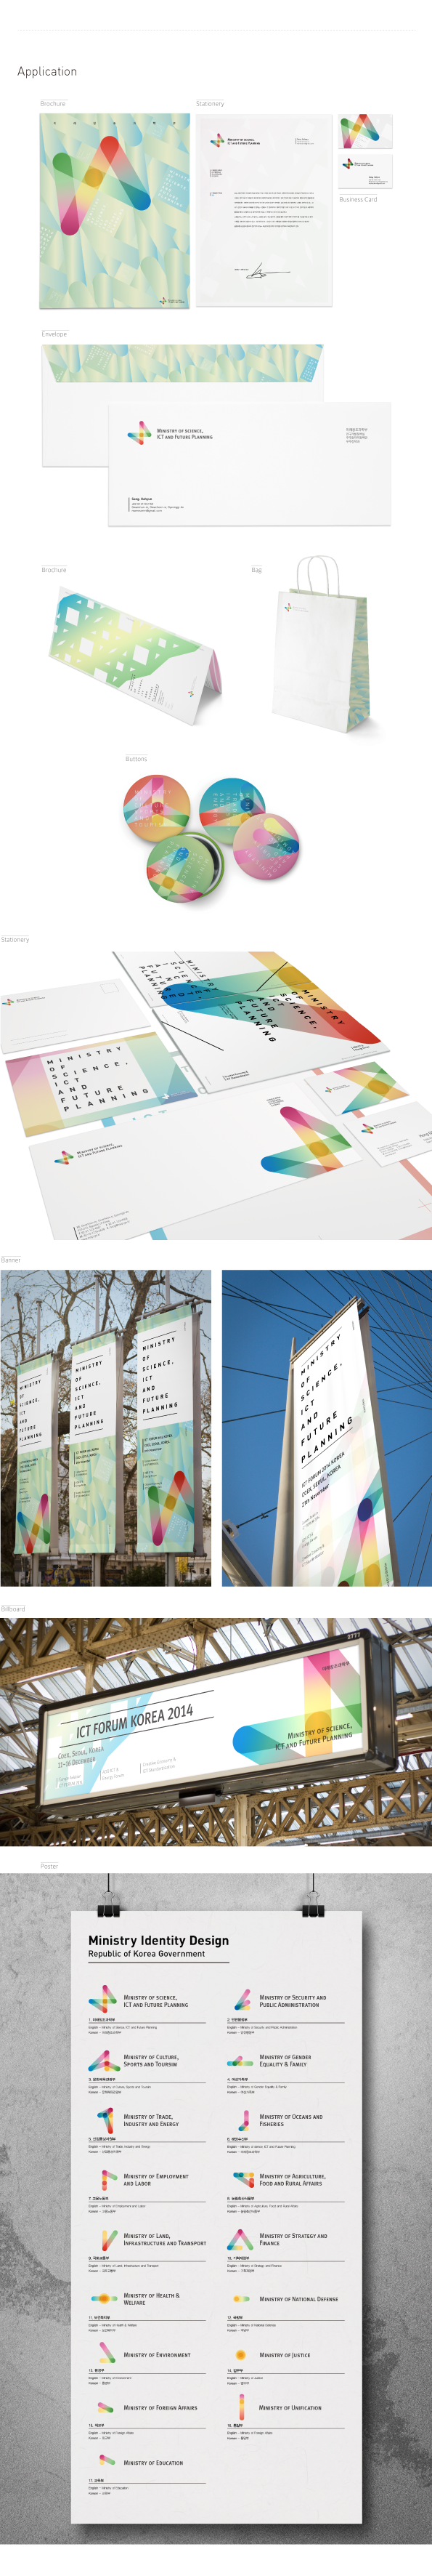 Republic of Korea Ministry Identity Design on Behance